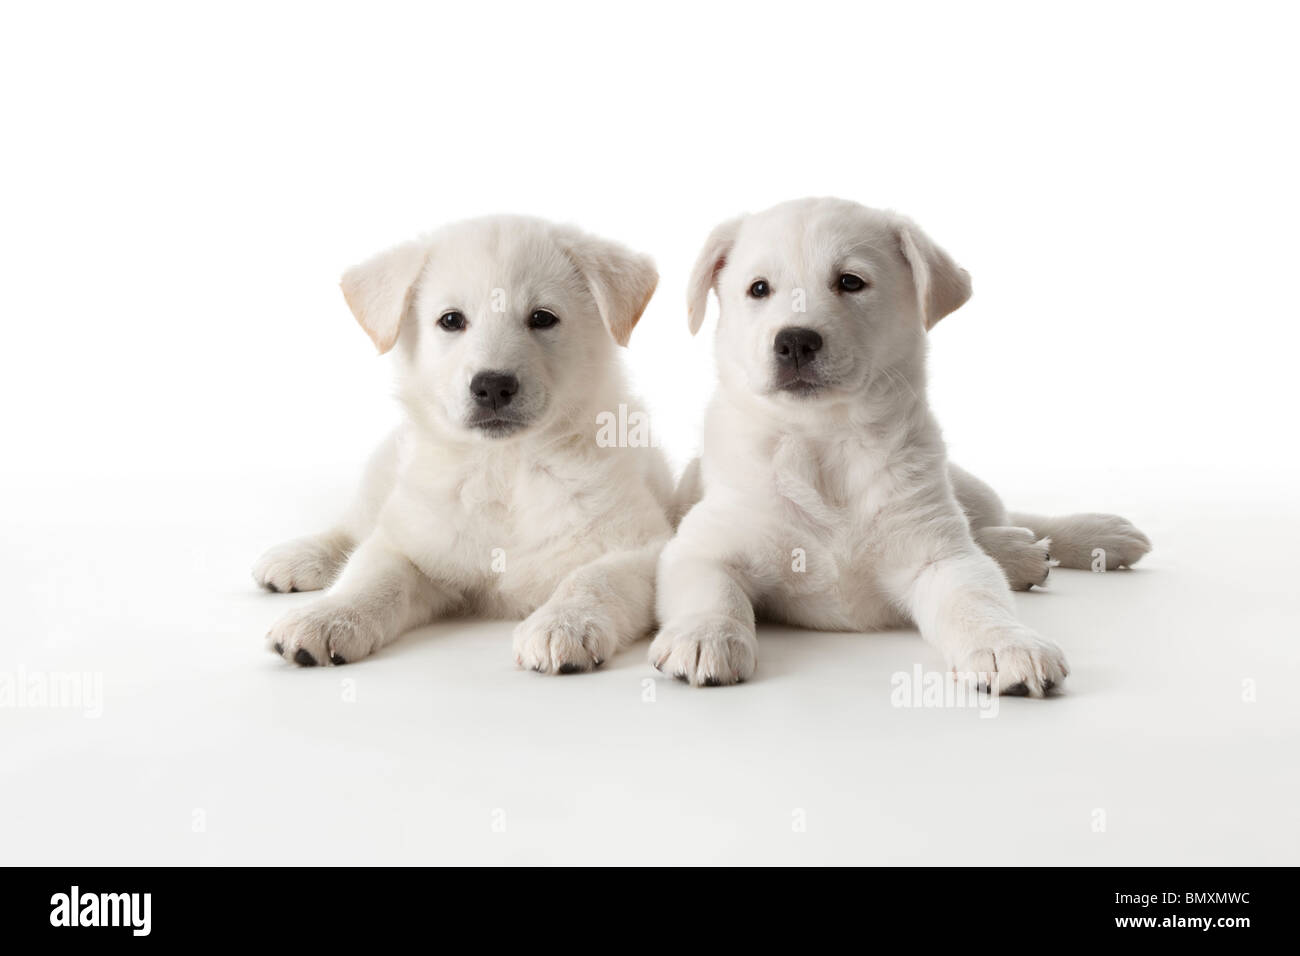 Two Cute White Puppies On White Background Stock Photo